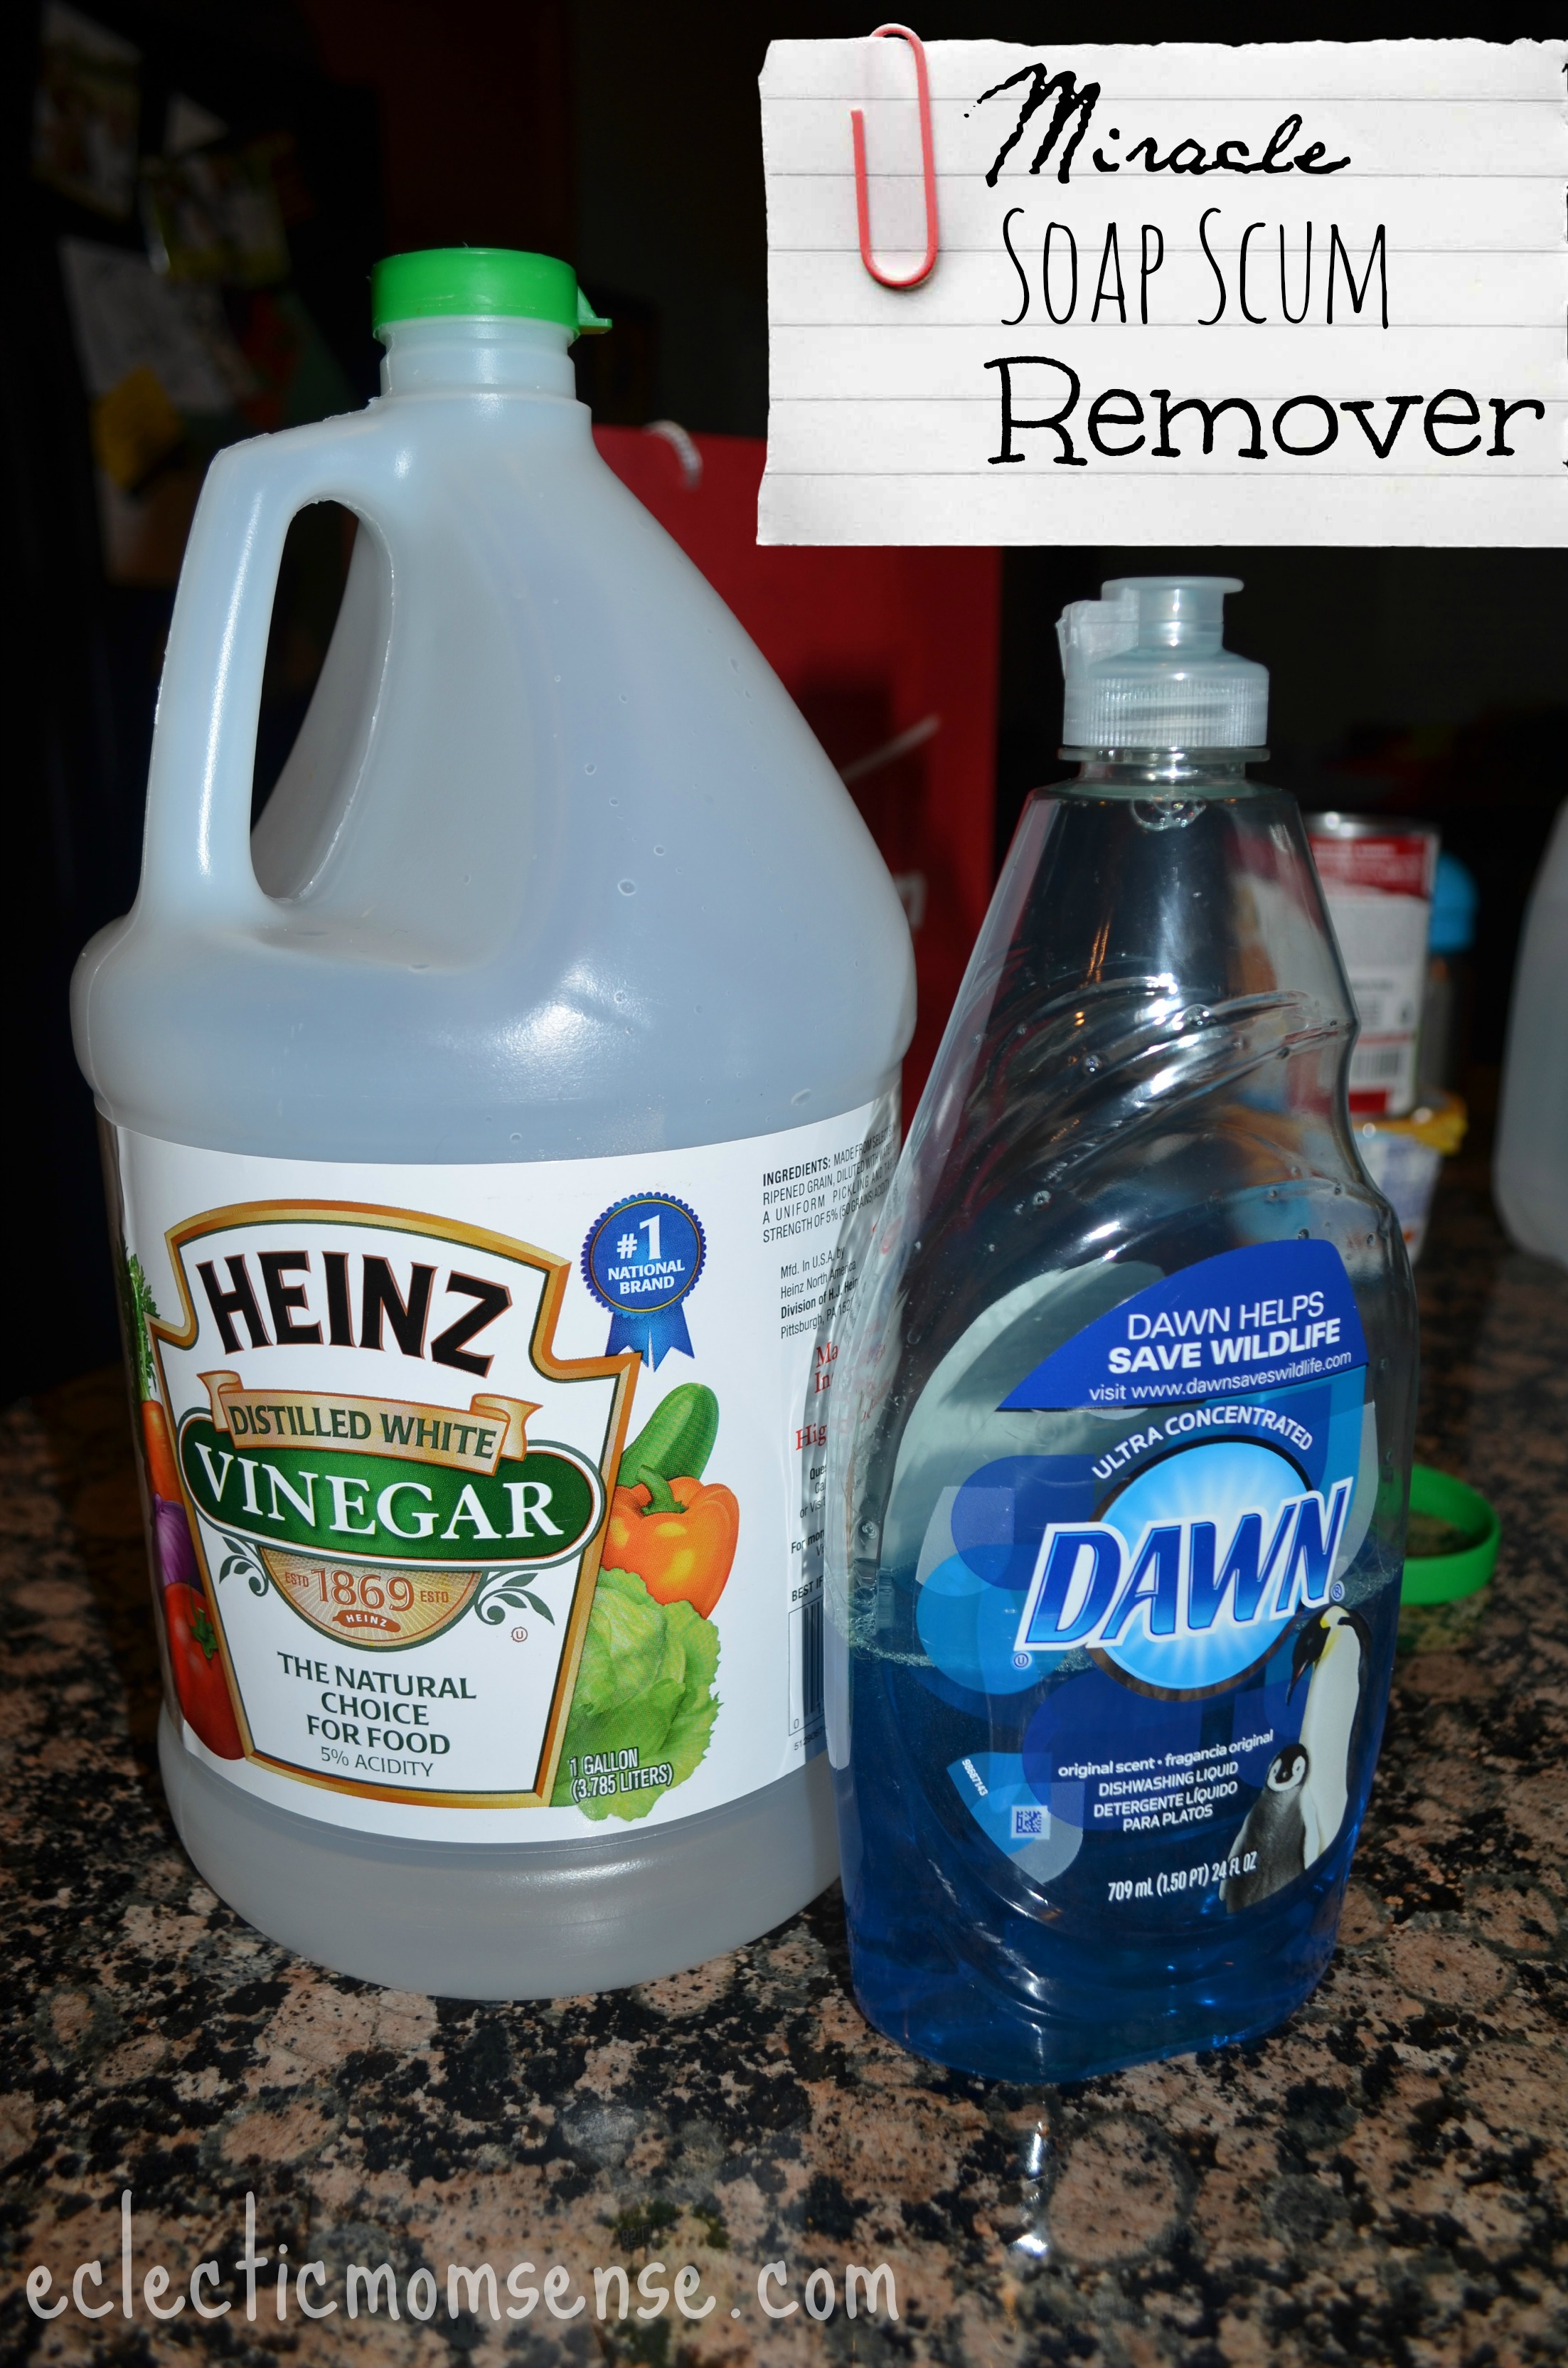 Cleaning Guide How To Clean Your Glass Shower Doors Properly: Miracle Soap Scum Remover